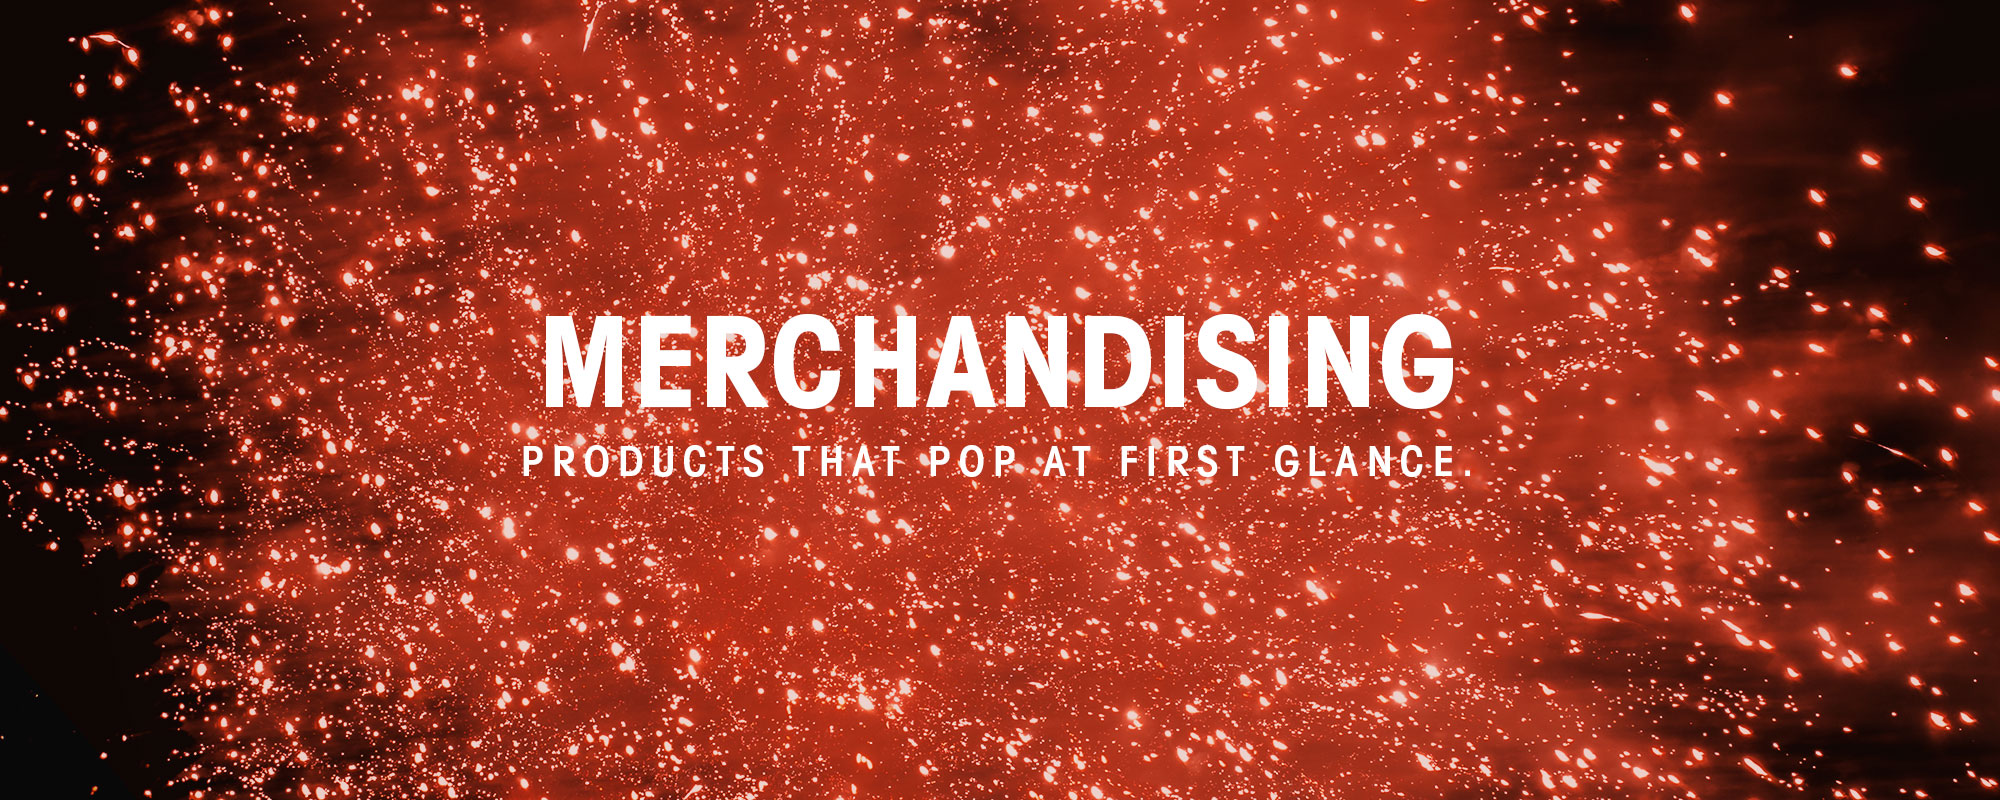 Merchandising, products that pop at first glance